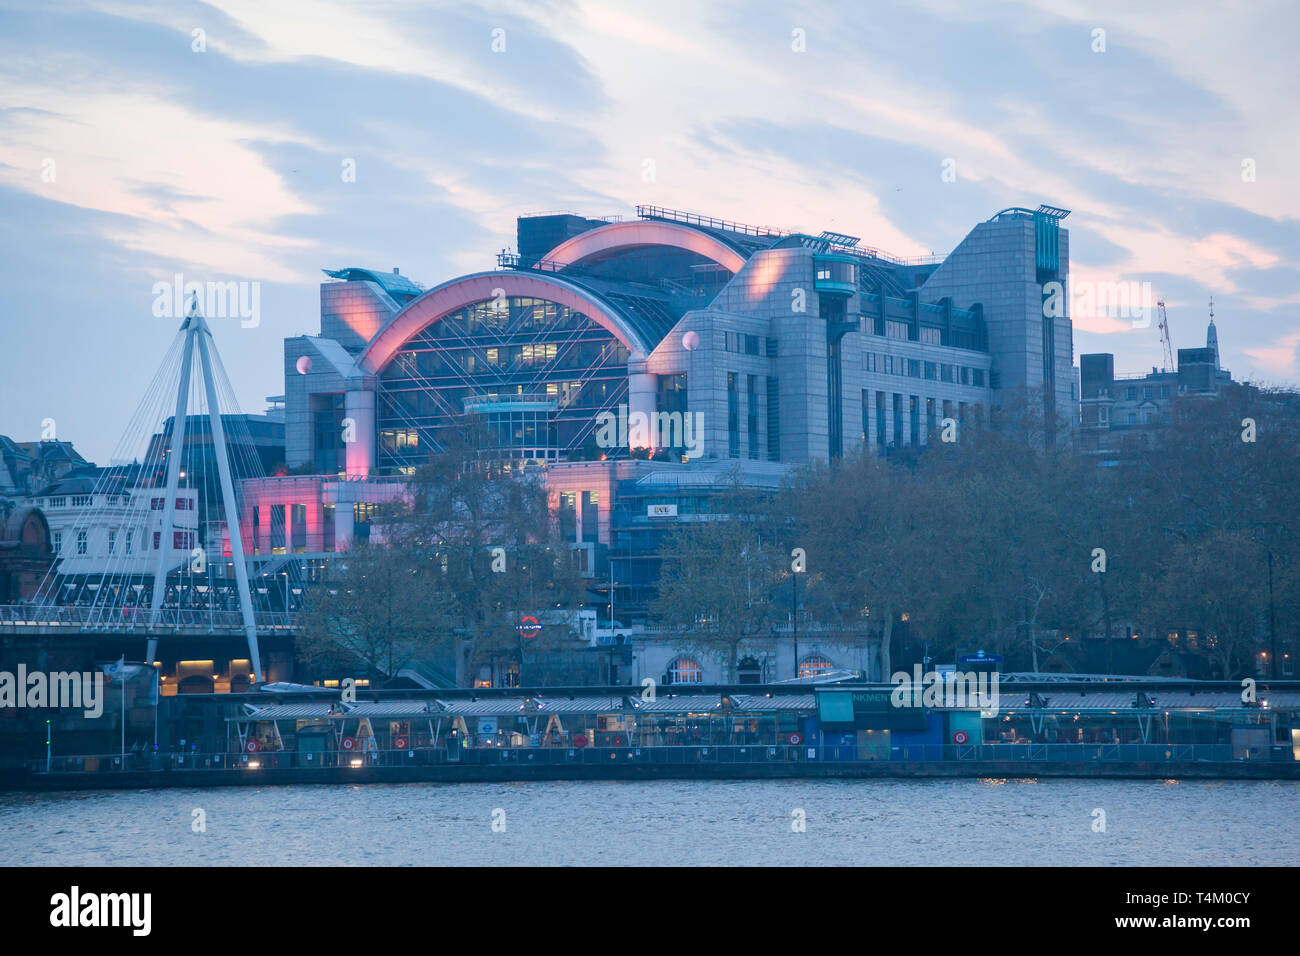 Charing Cross Station from the River Thames at dusk with pink floodlighting - Stock Image